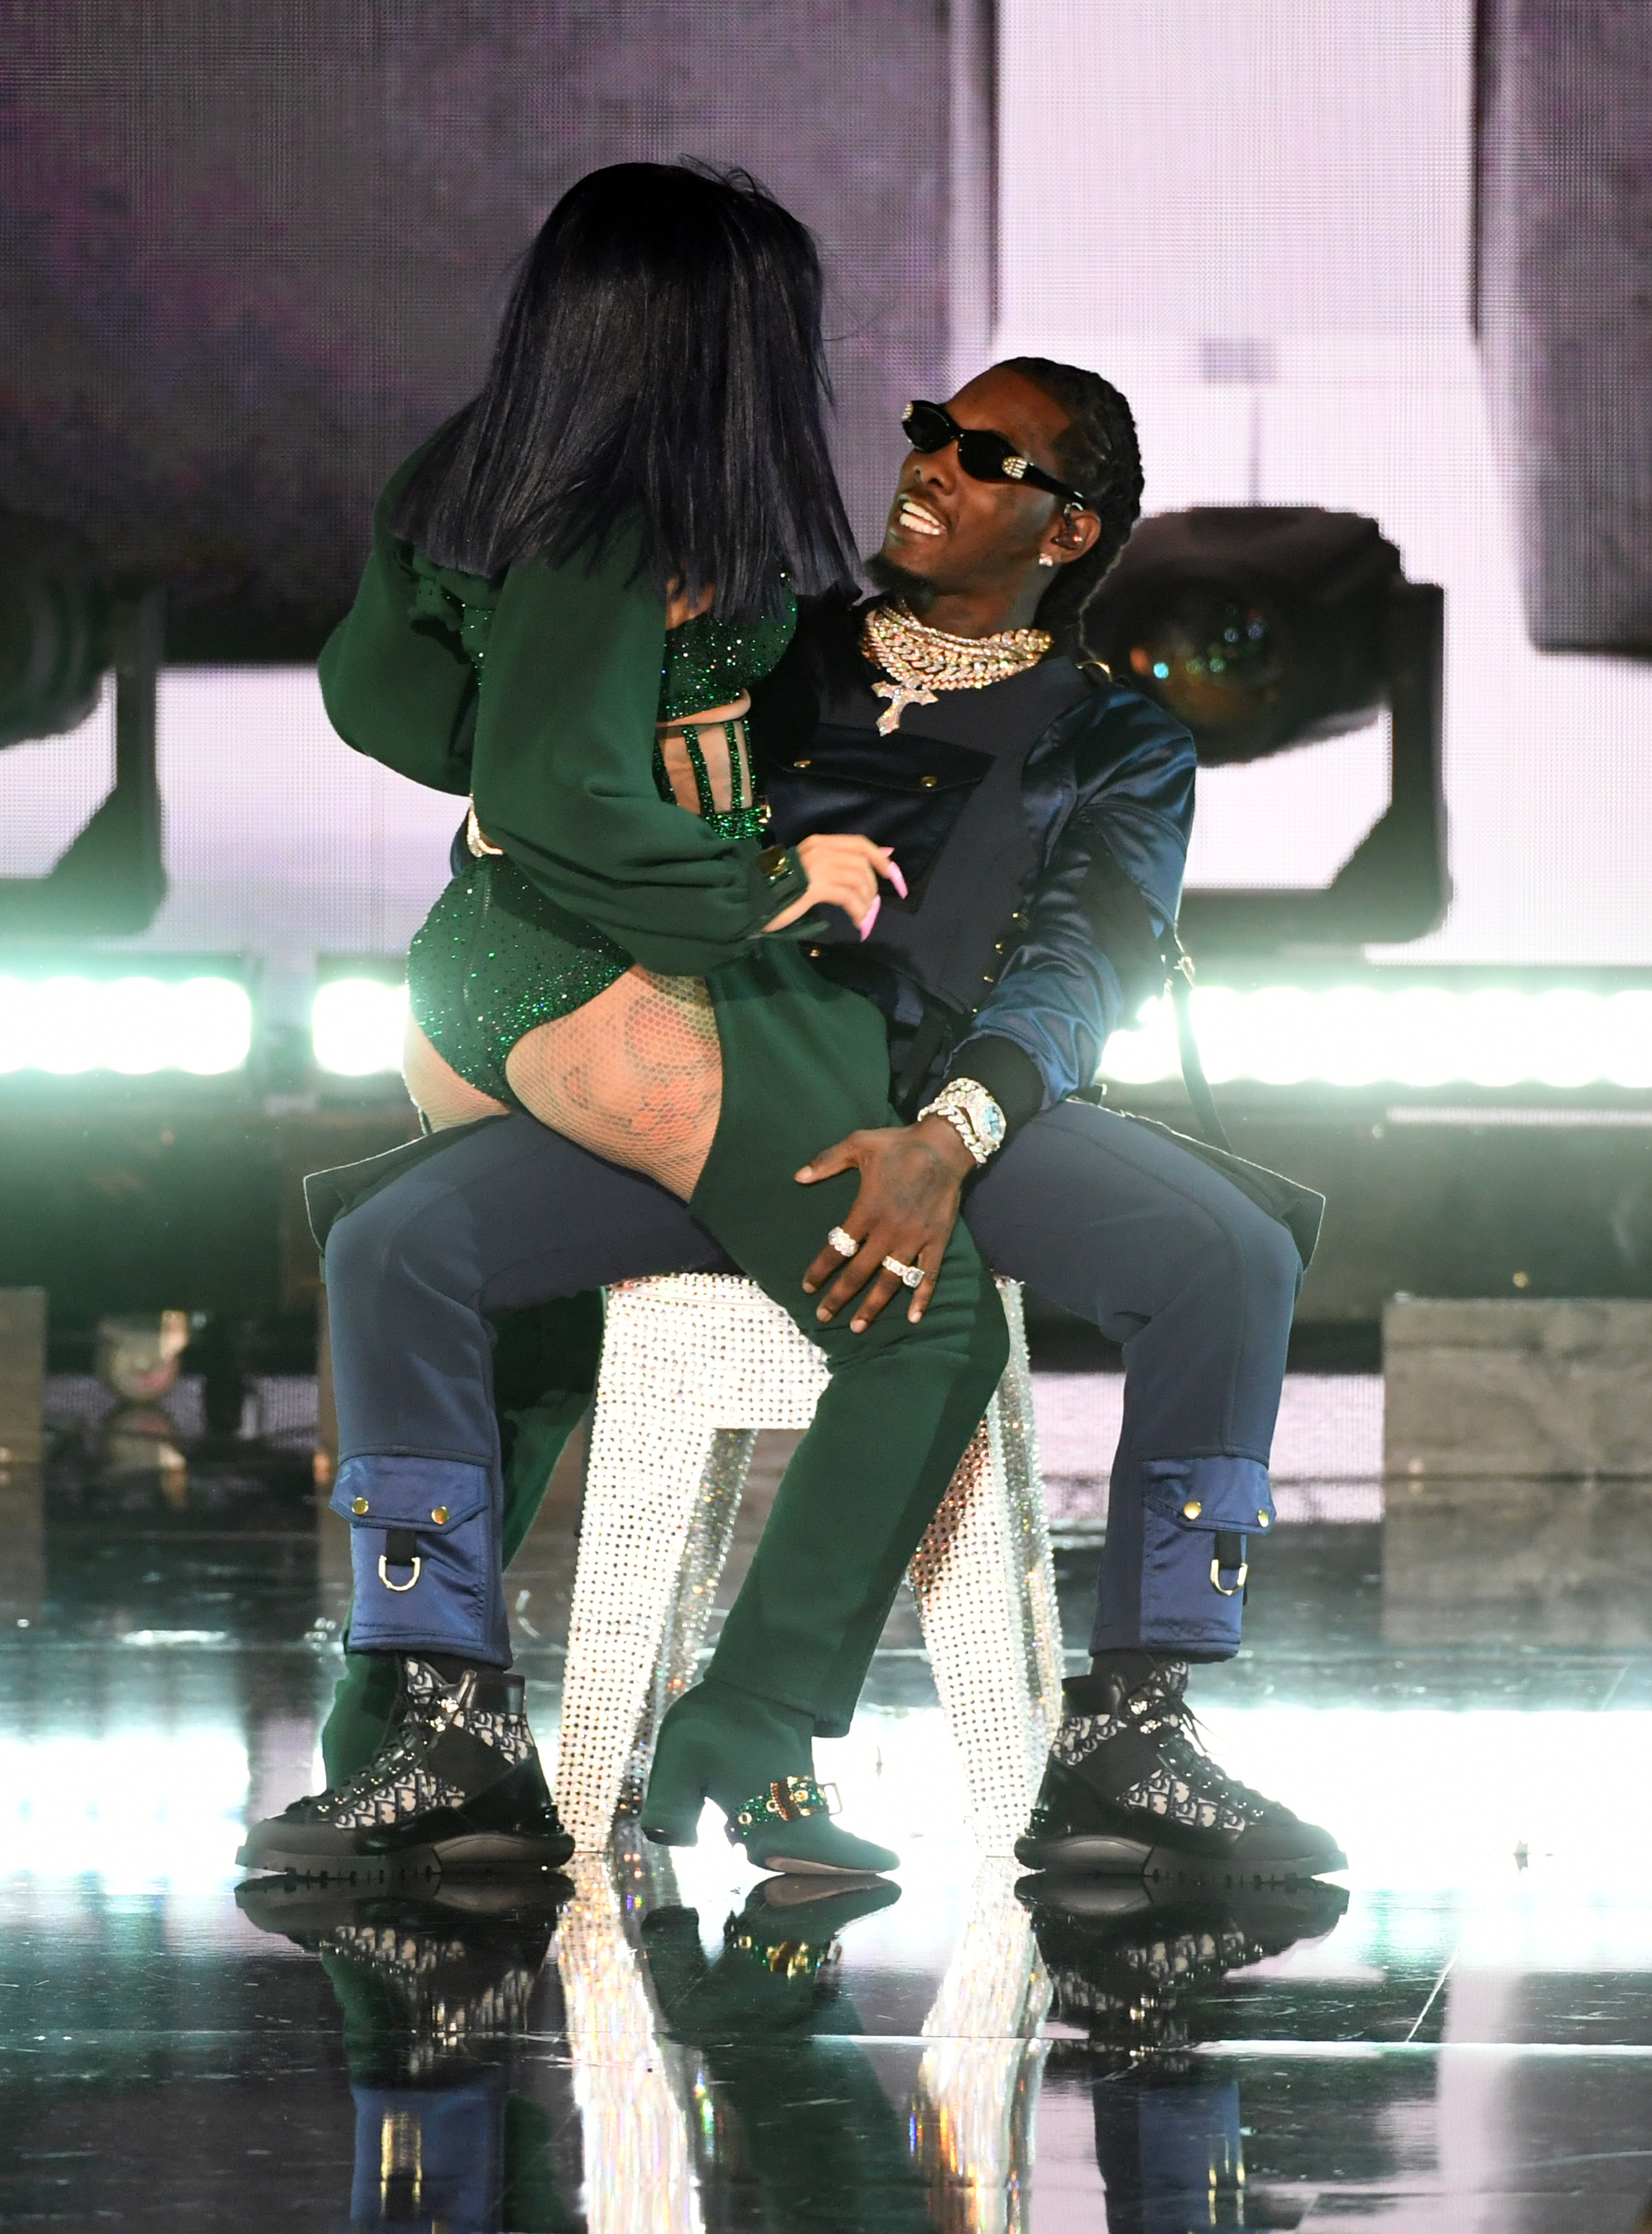 Cardi B Gives Offset A Lap Dance Onstage At Bet Awards